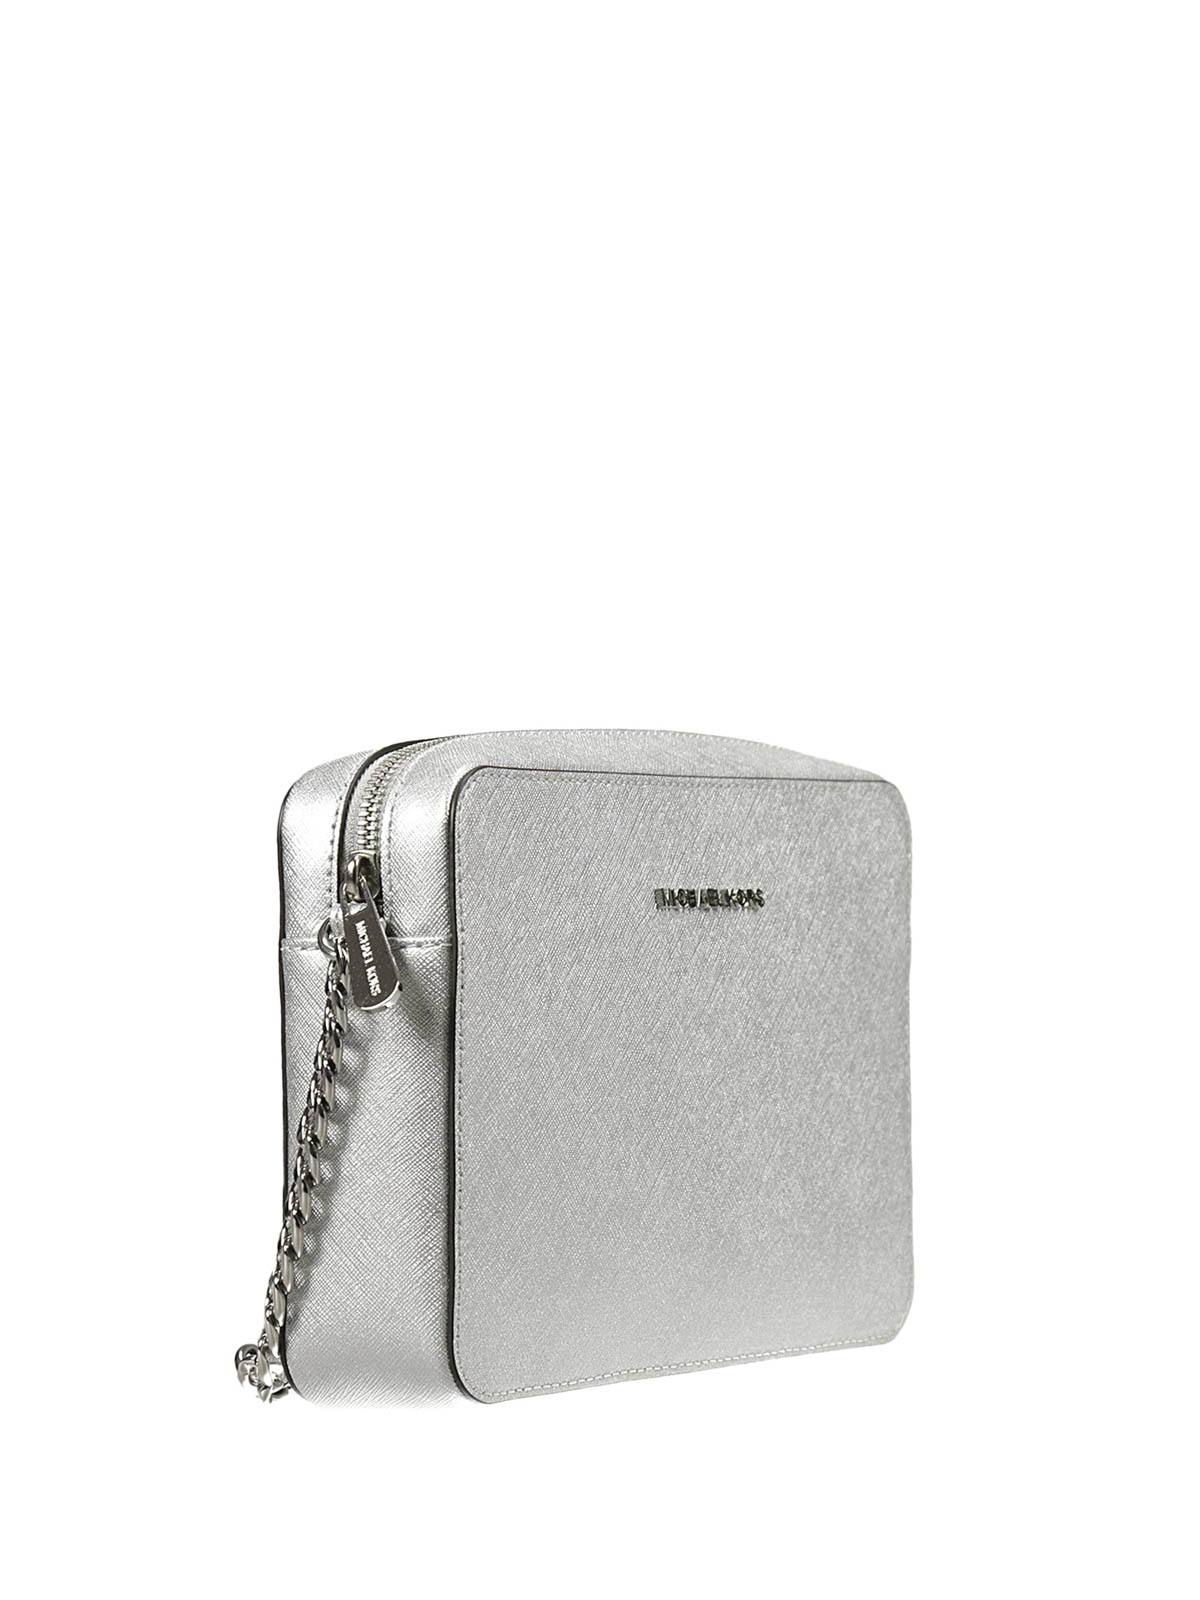 b7841f9735 MICHAEL KORS: cross body bags online - Large Jet Set Travel crossbody bag